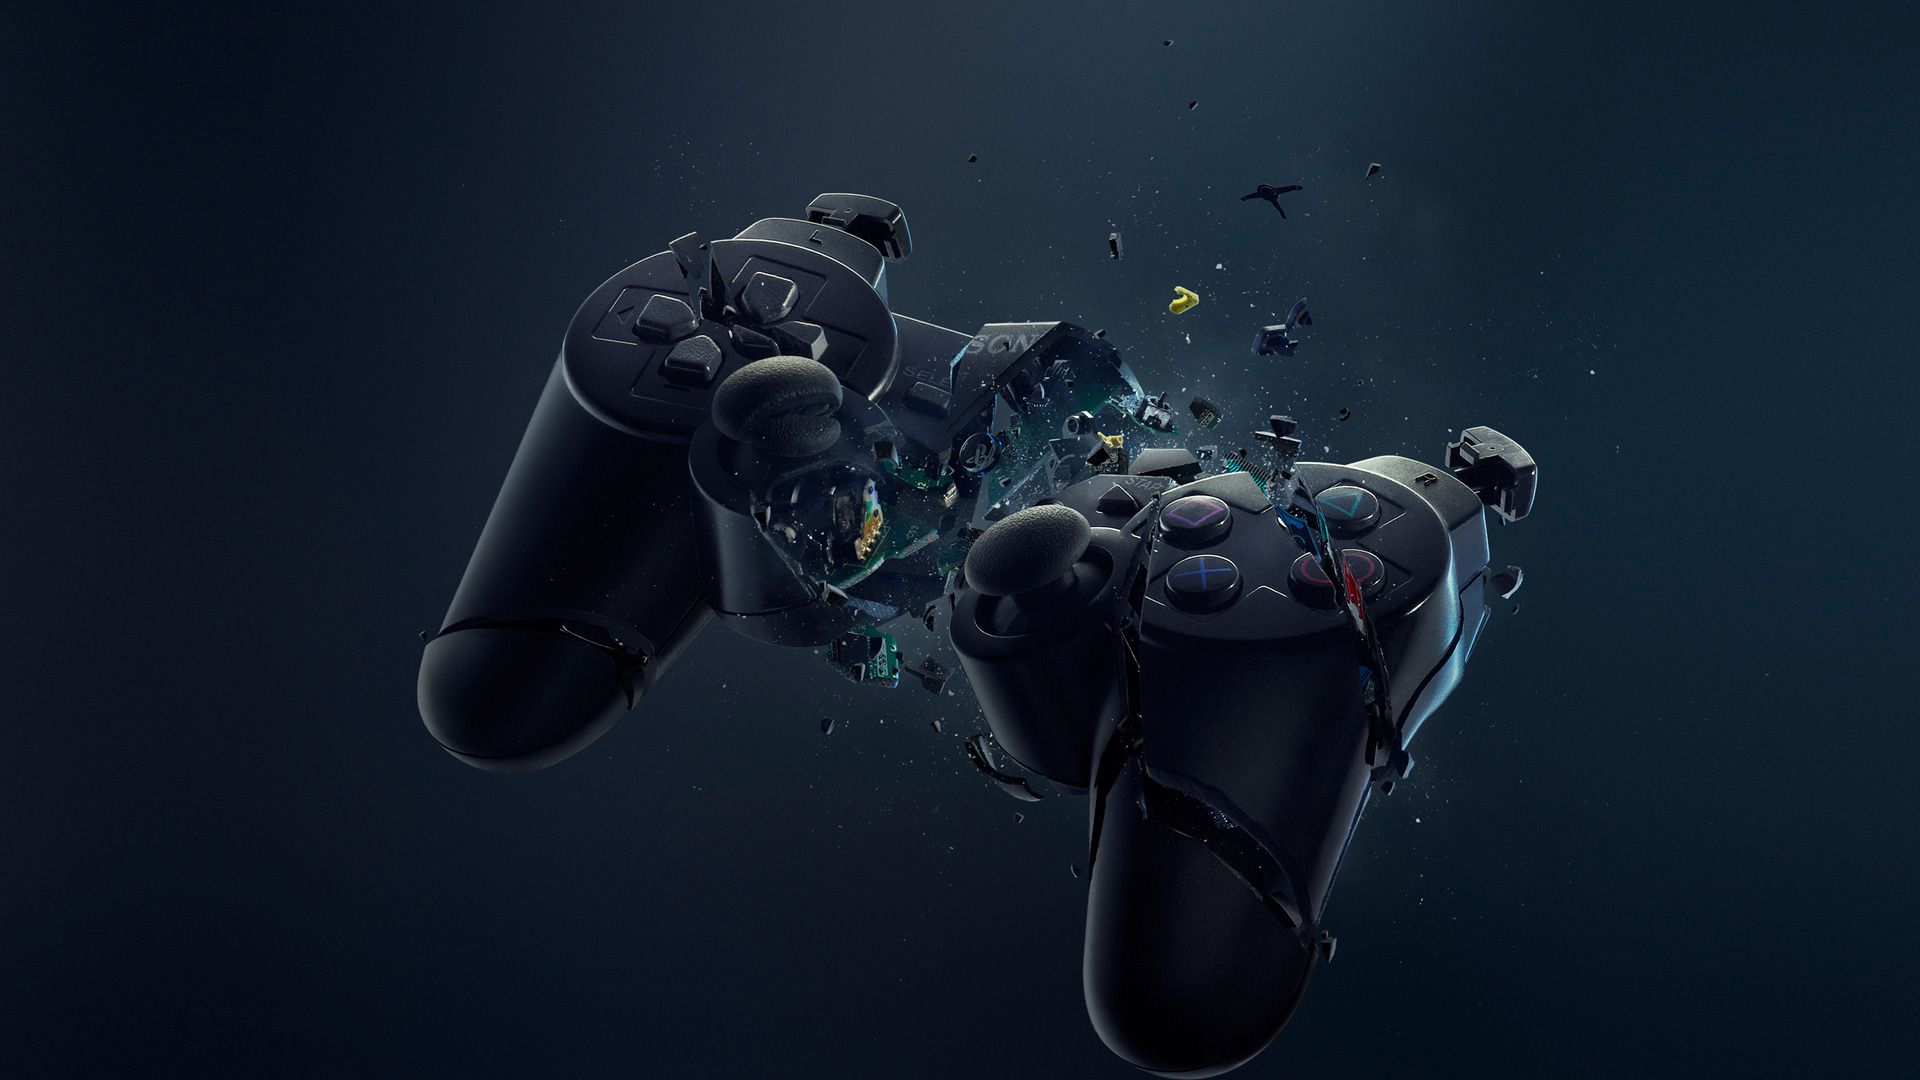 As A Playstation Fan I Like This Wallpaper Picture Juego De